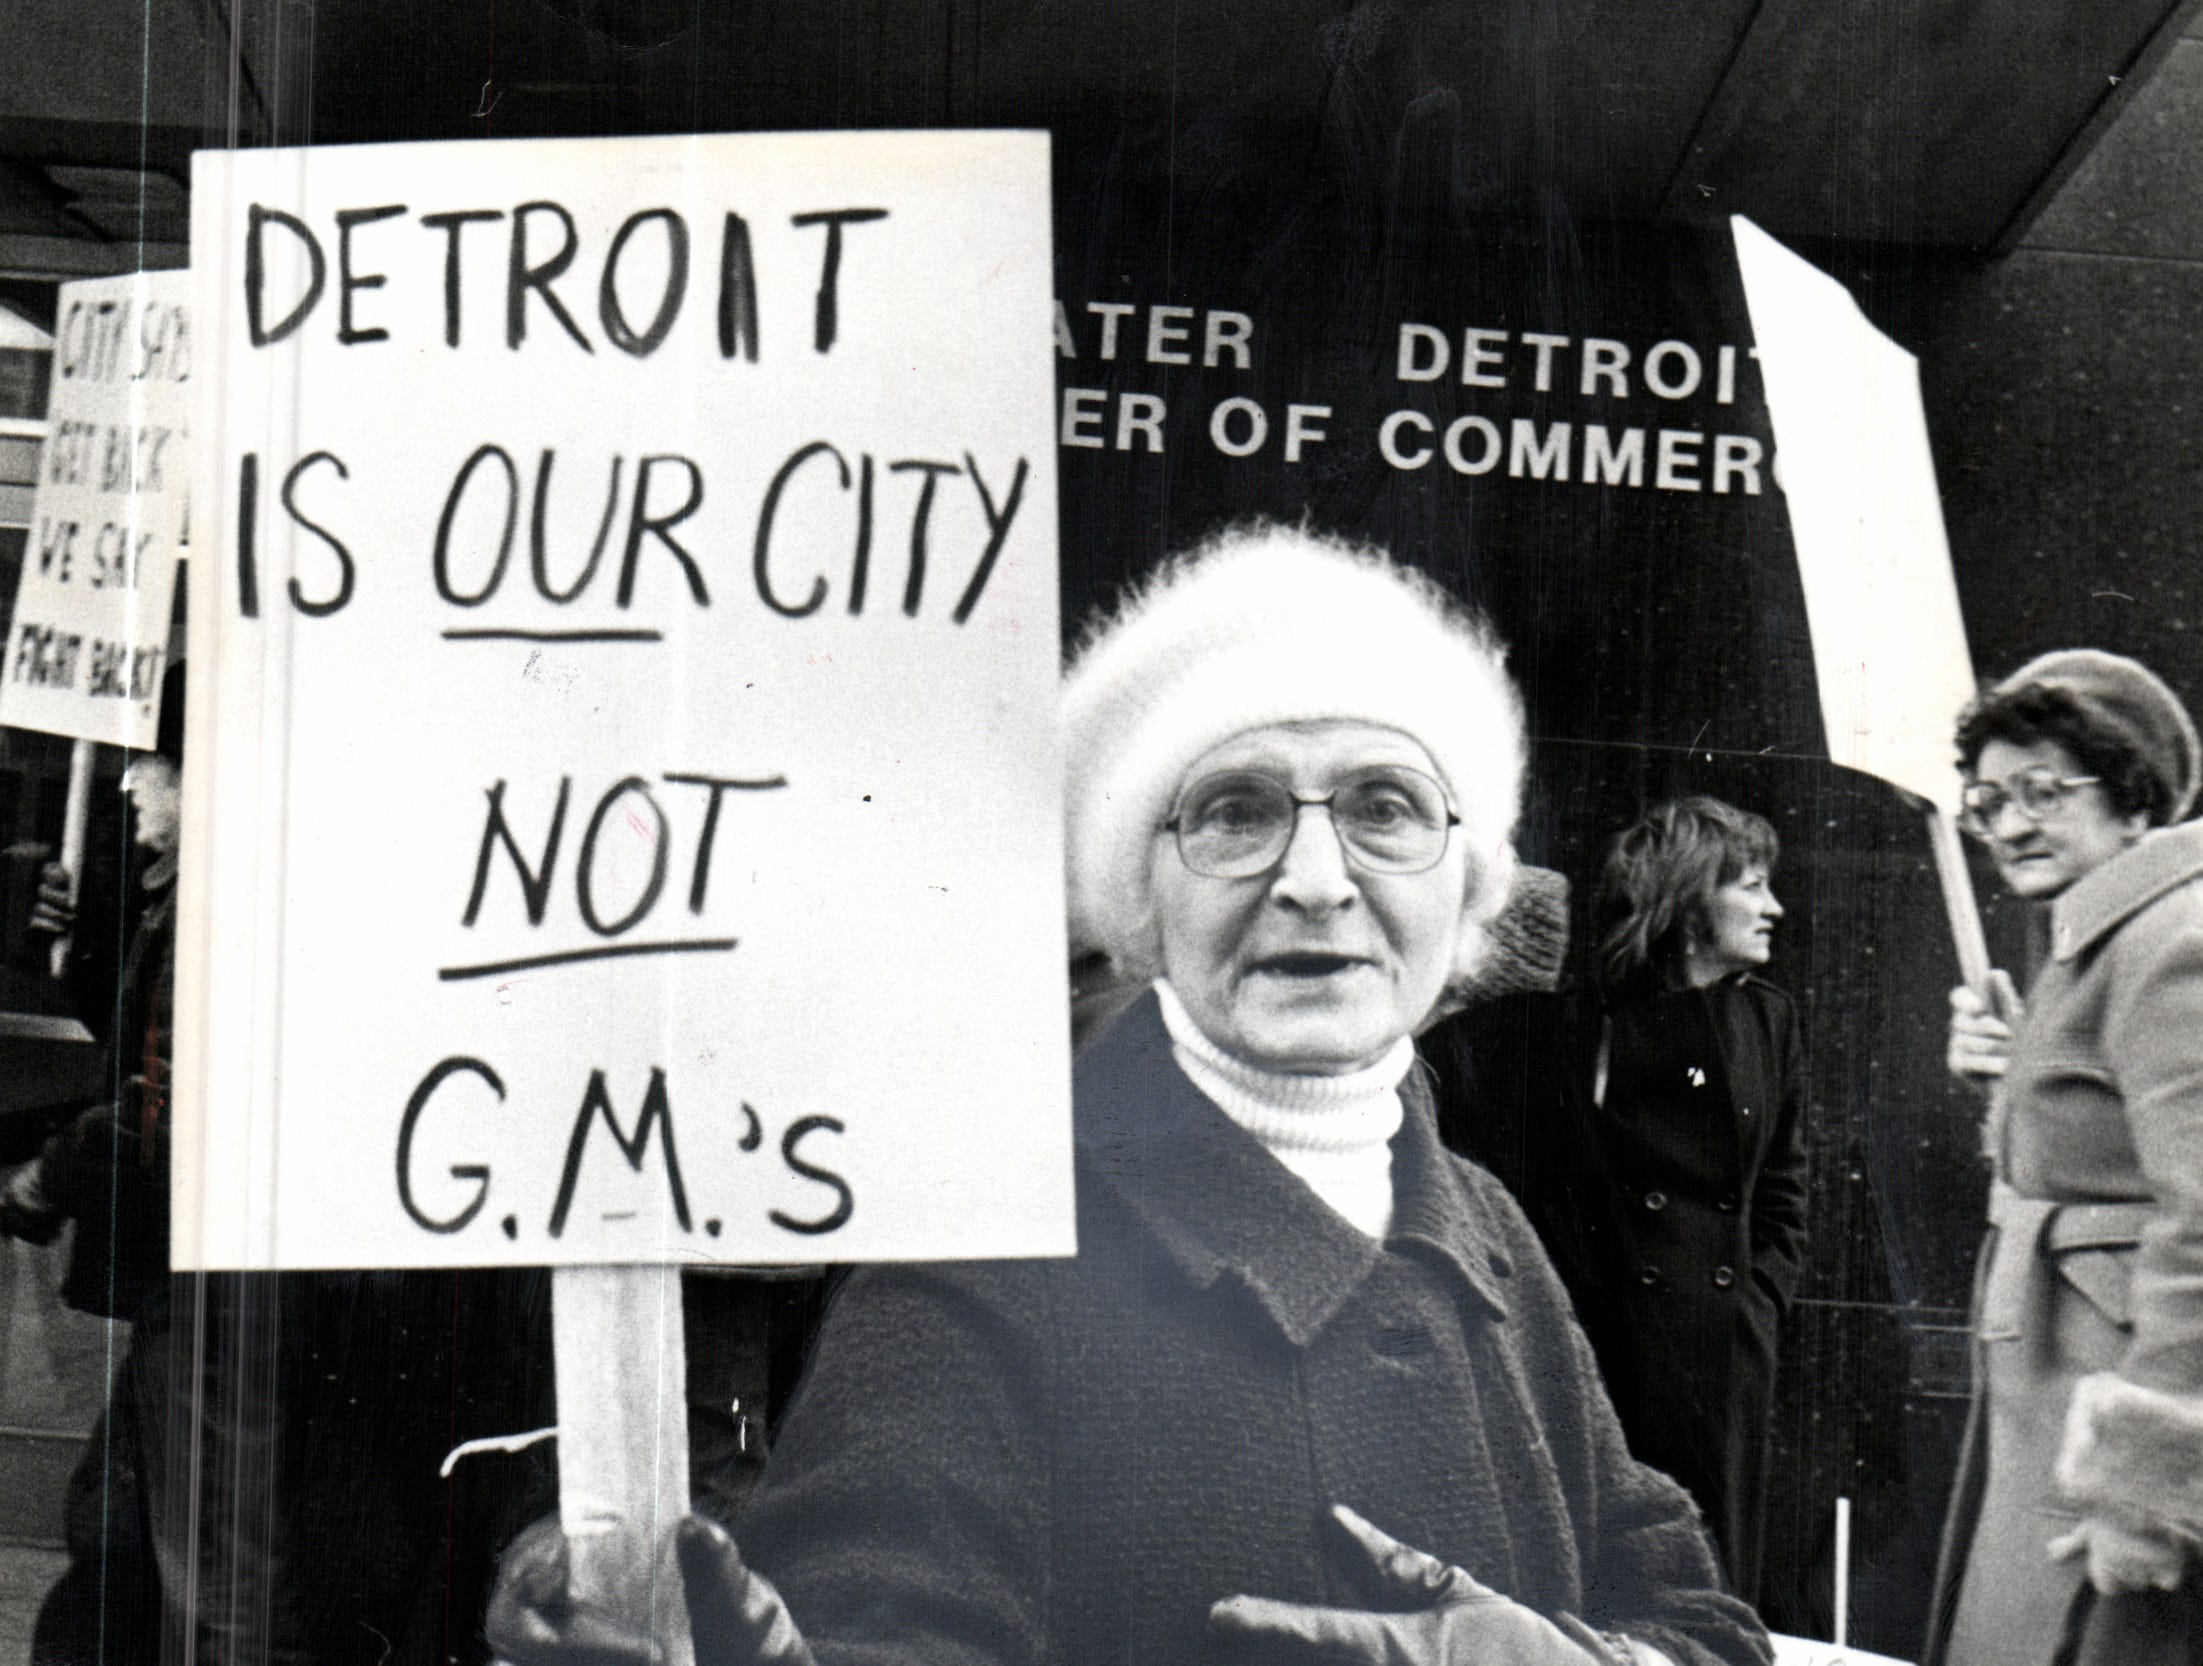 Pickets for the Poletown Neighborhood Council demonstrate against the plant at Detroit's Community and Economic Department office.